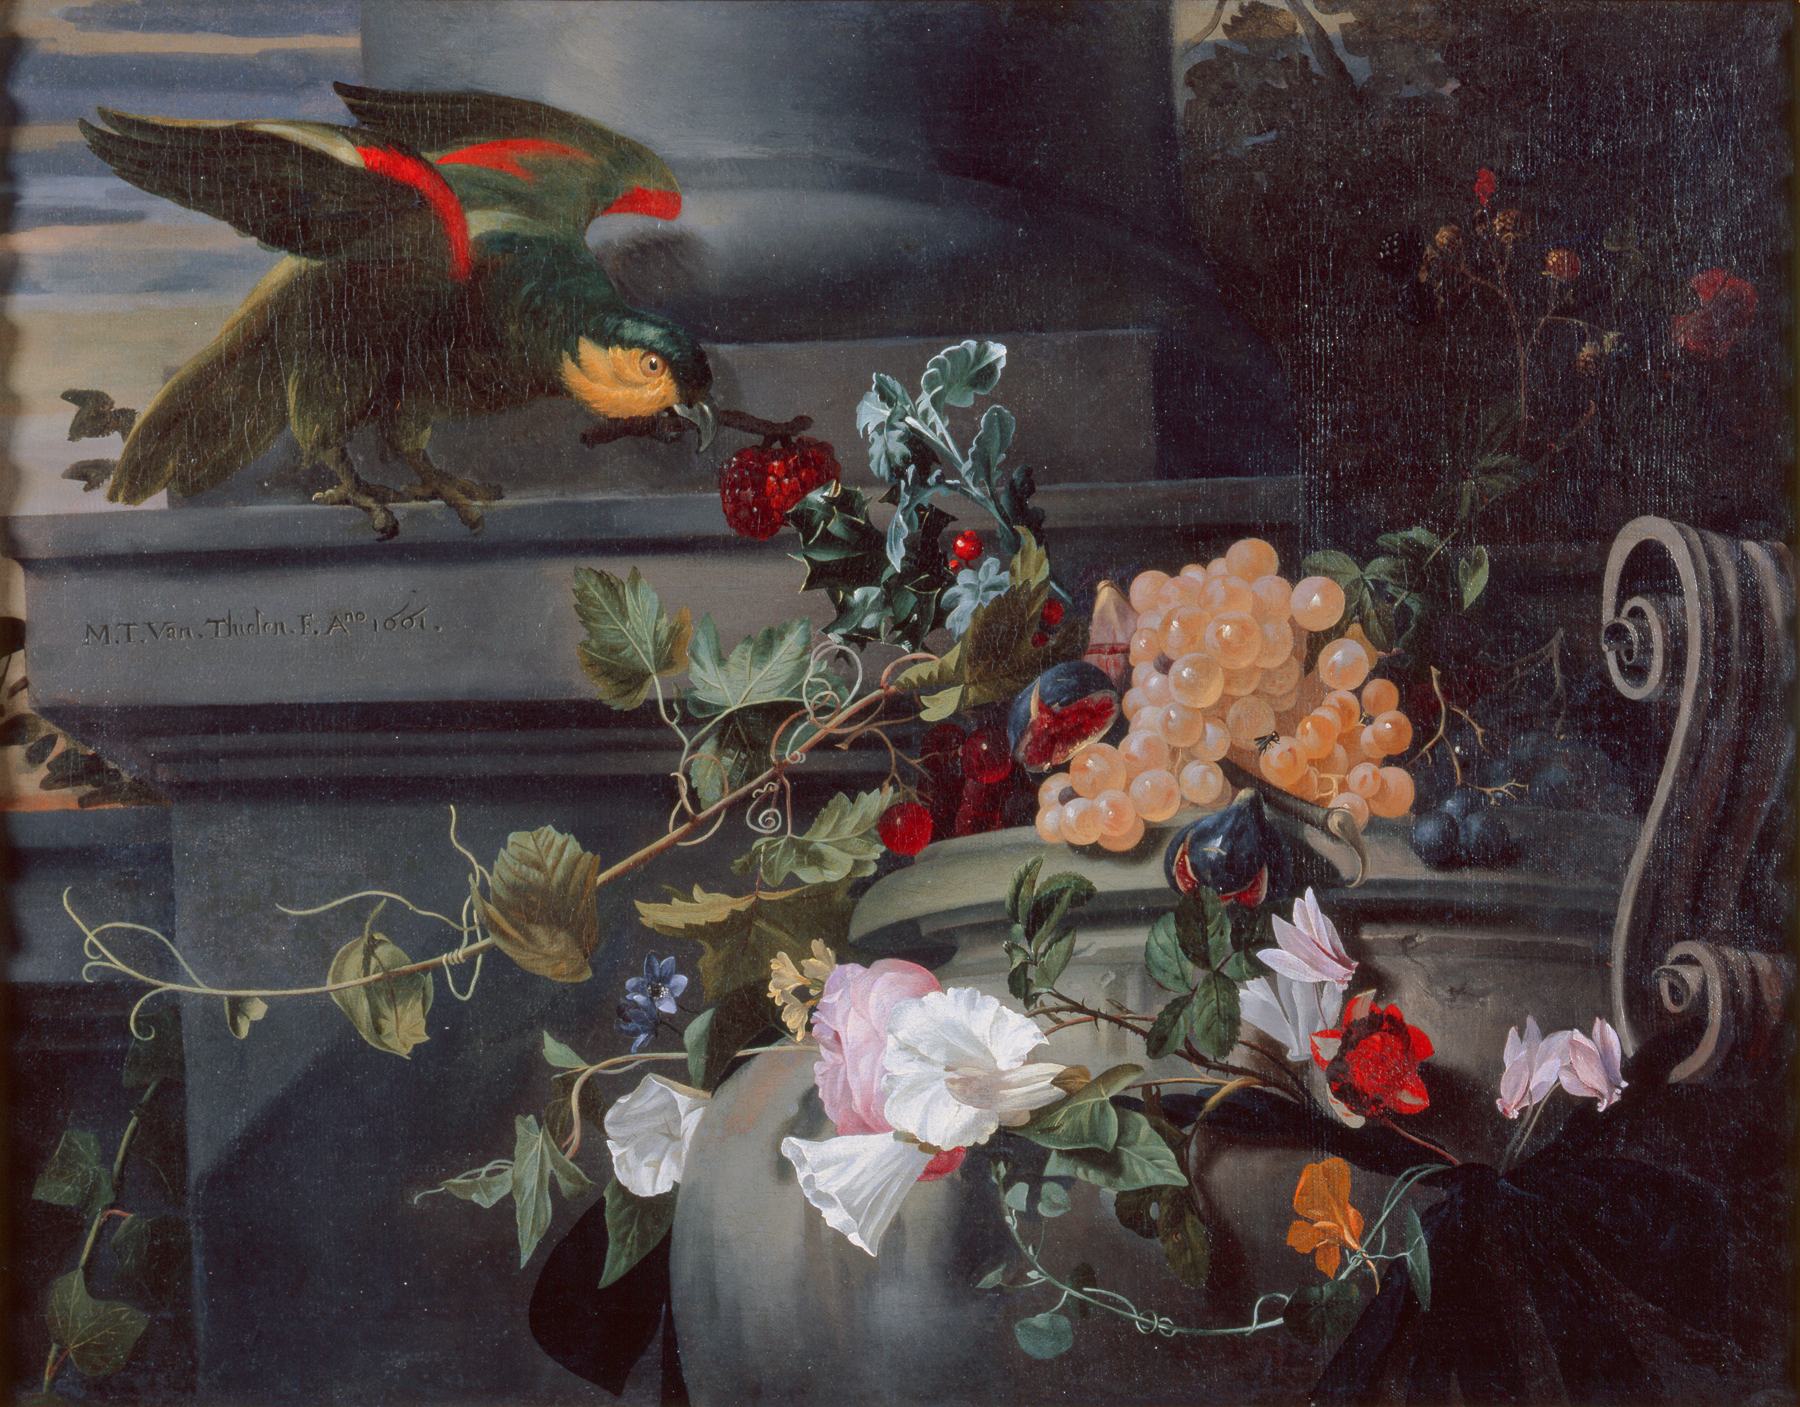 Maria-Theresia van Thielen (Flemish, 1640–1706), Still Life with Parrot, 1661. Oil on canvas. 21 × 27 in. (53.34 × 68.58 cm). Milwaukee Art Museum, gift of Mr. and Mrs. John Schroeder in memory of their parents. M1967.41